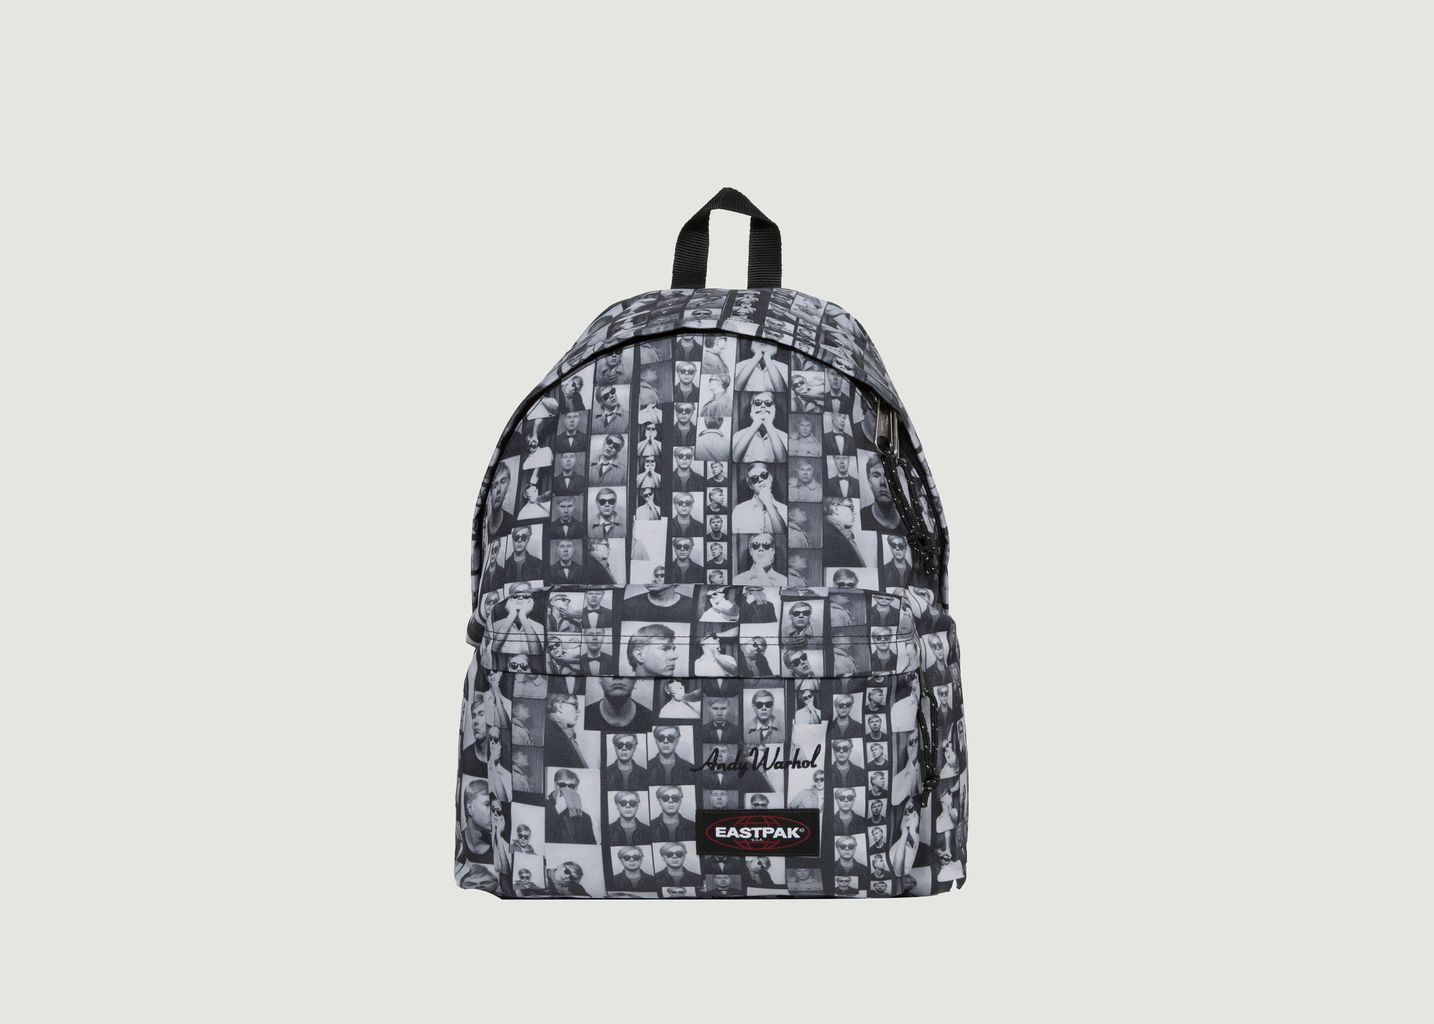 Sac Padded Pak'r® Andy Warhol Photobooth - Eastpak